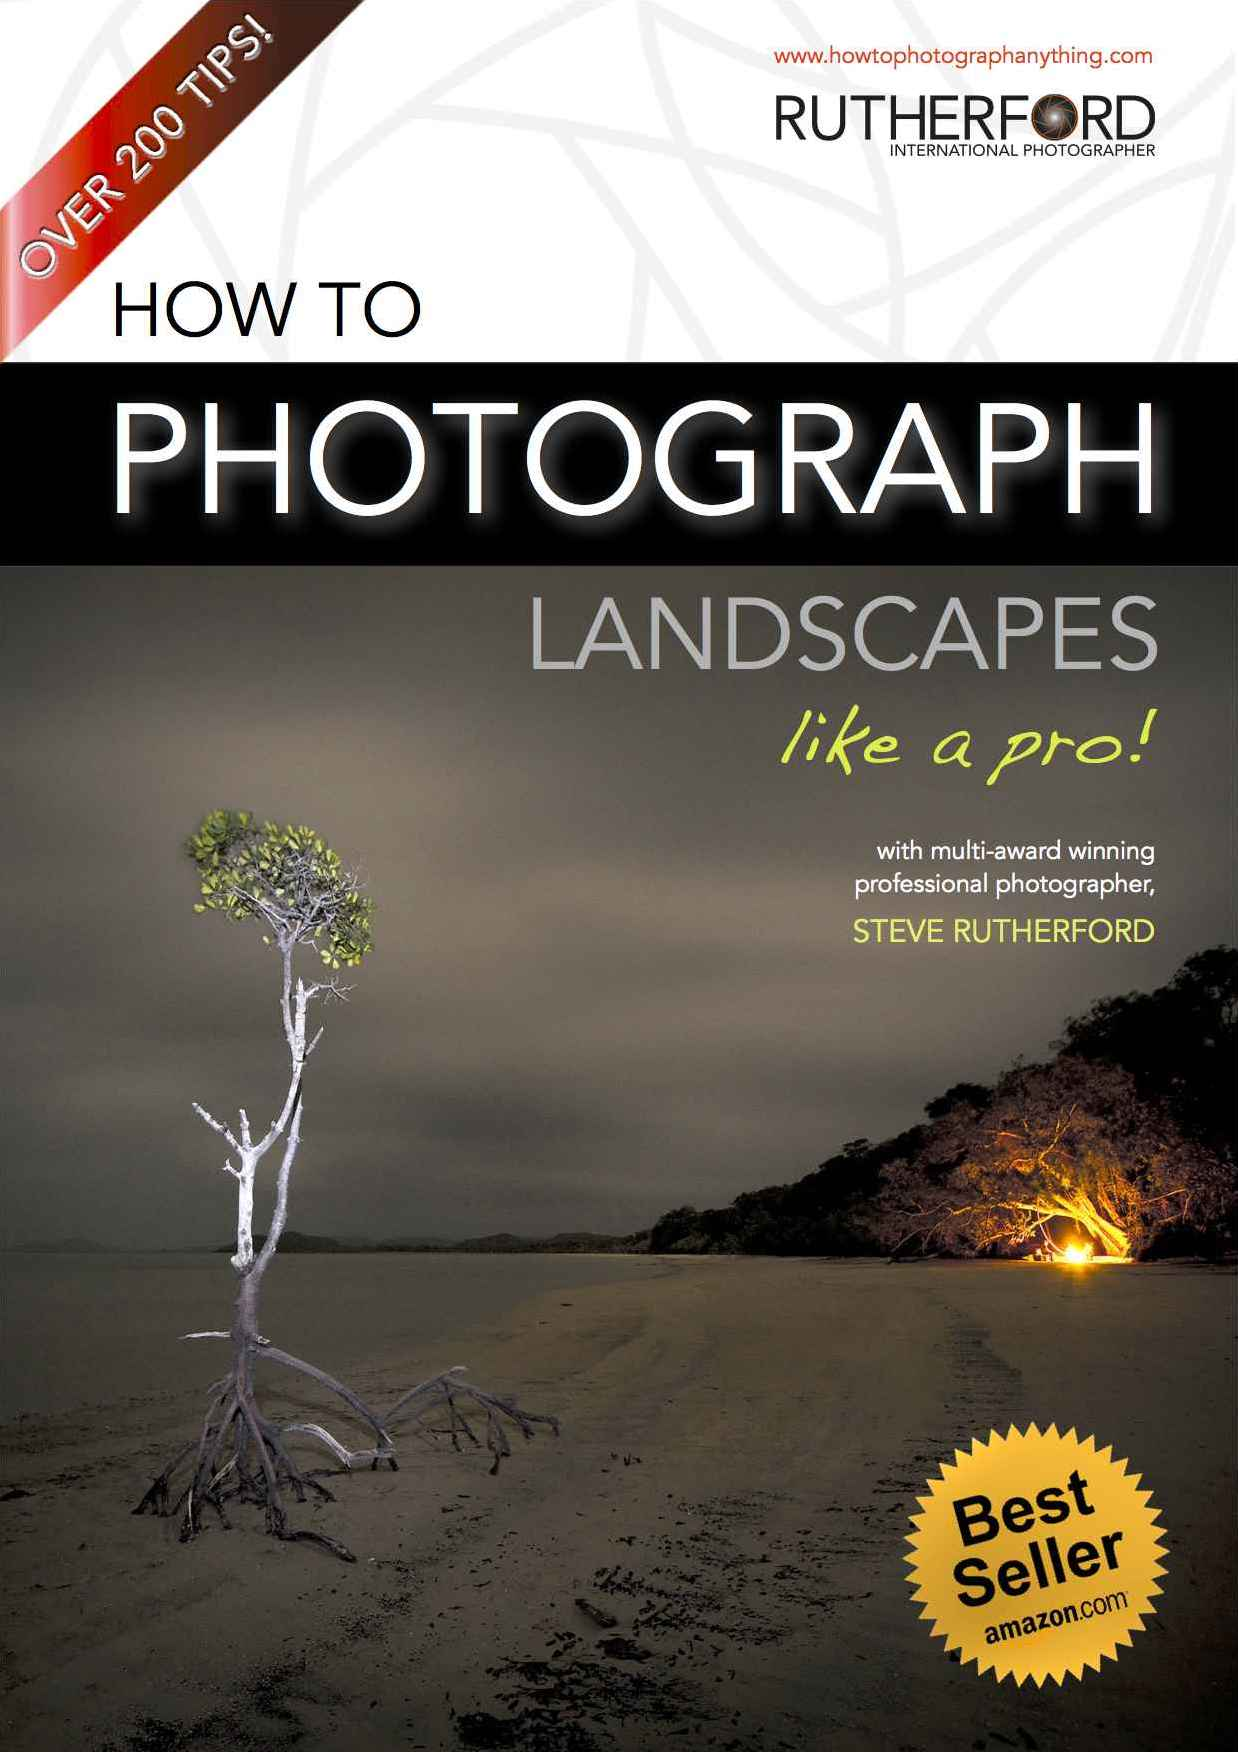 How to Photograph Landscapes like a Pro download dree